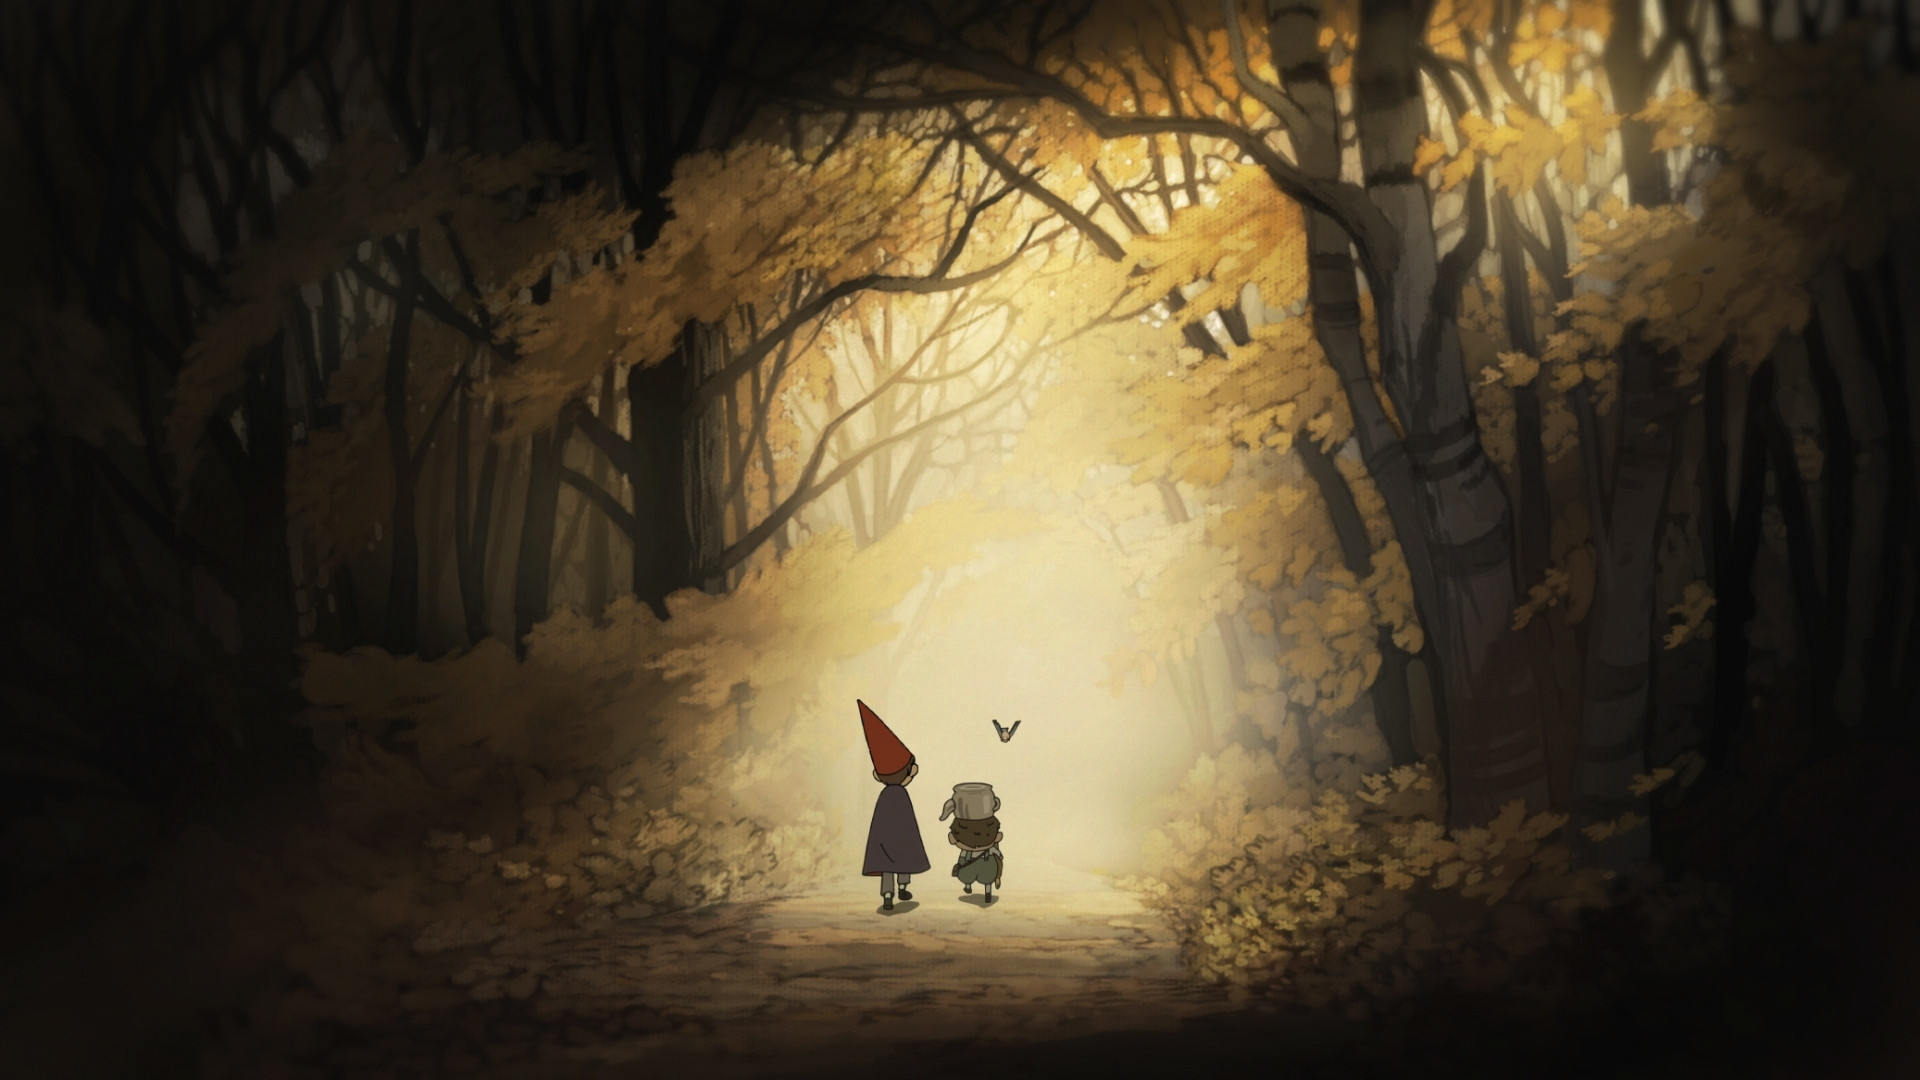 10 Most Popular Over The Garden Wall Desktop Wallpaper FULL HD 1920×1080 For PC Desktop